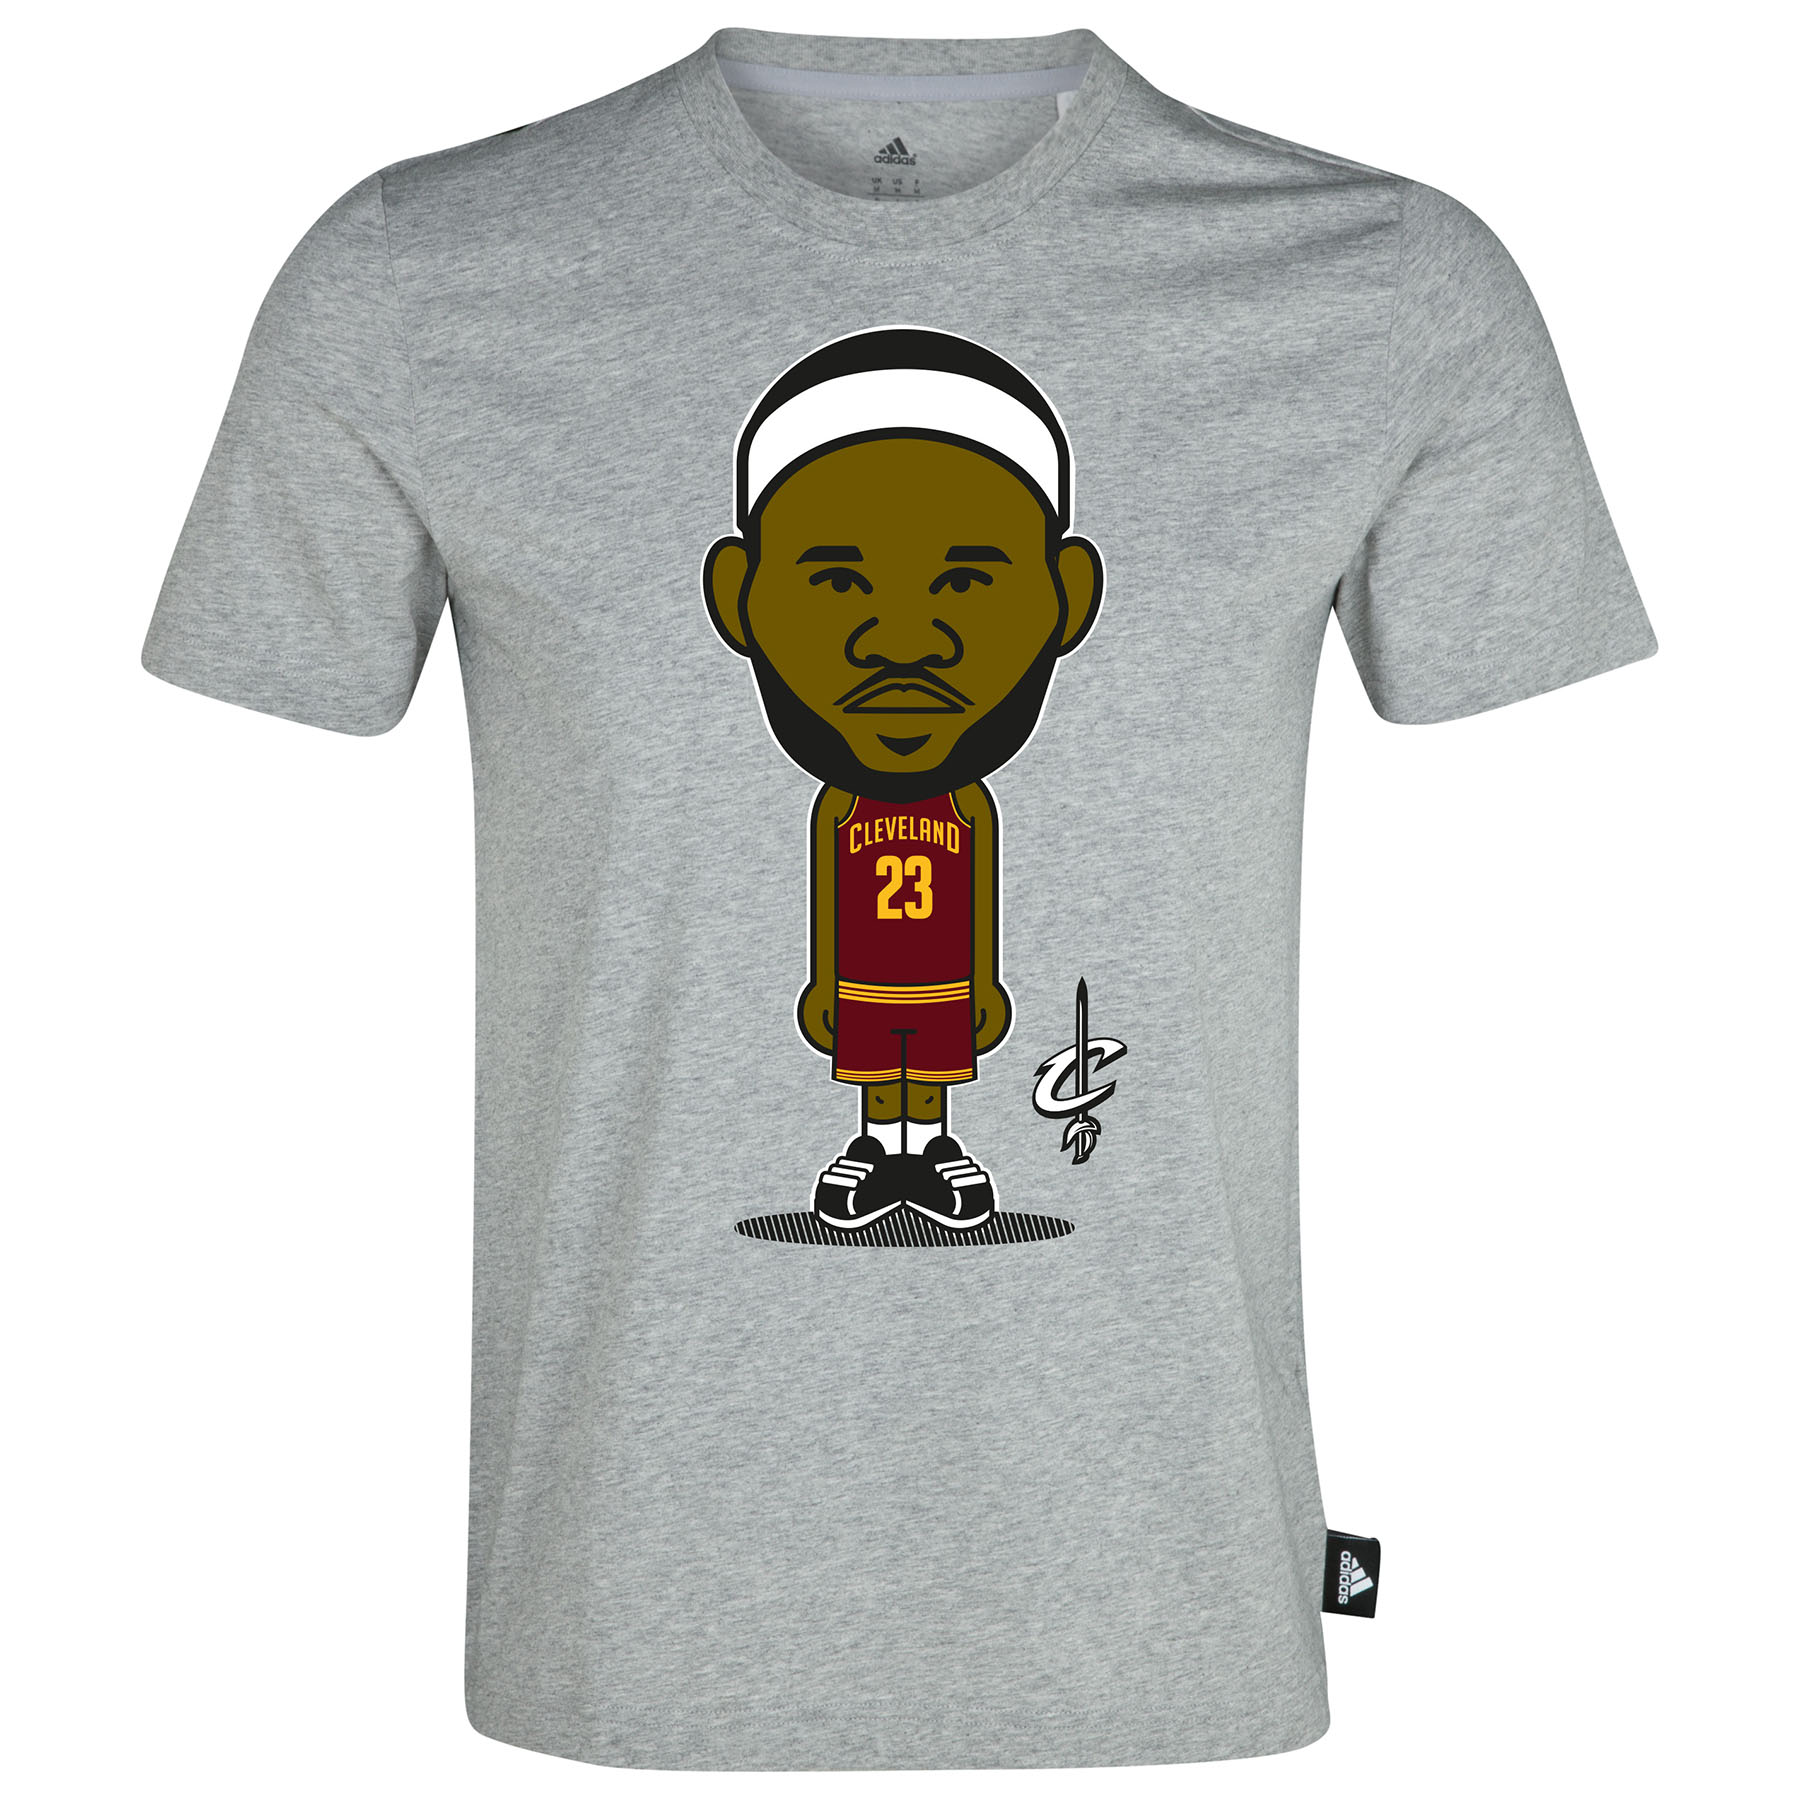 Cleveland Cavaliers Geek T-Shirt - Lebron James - Mens White